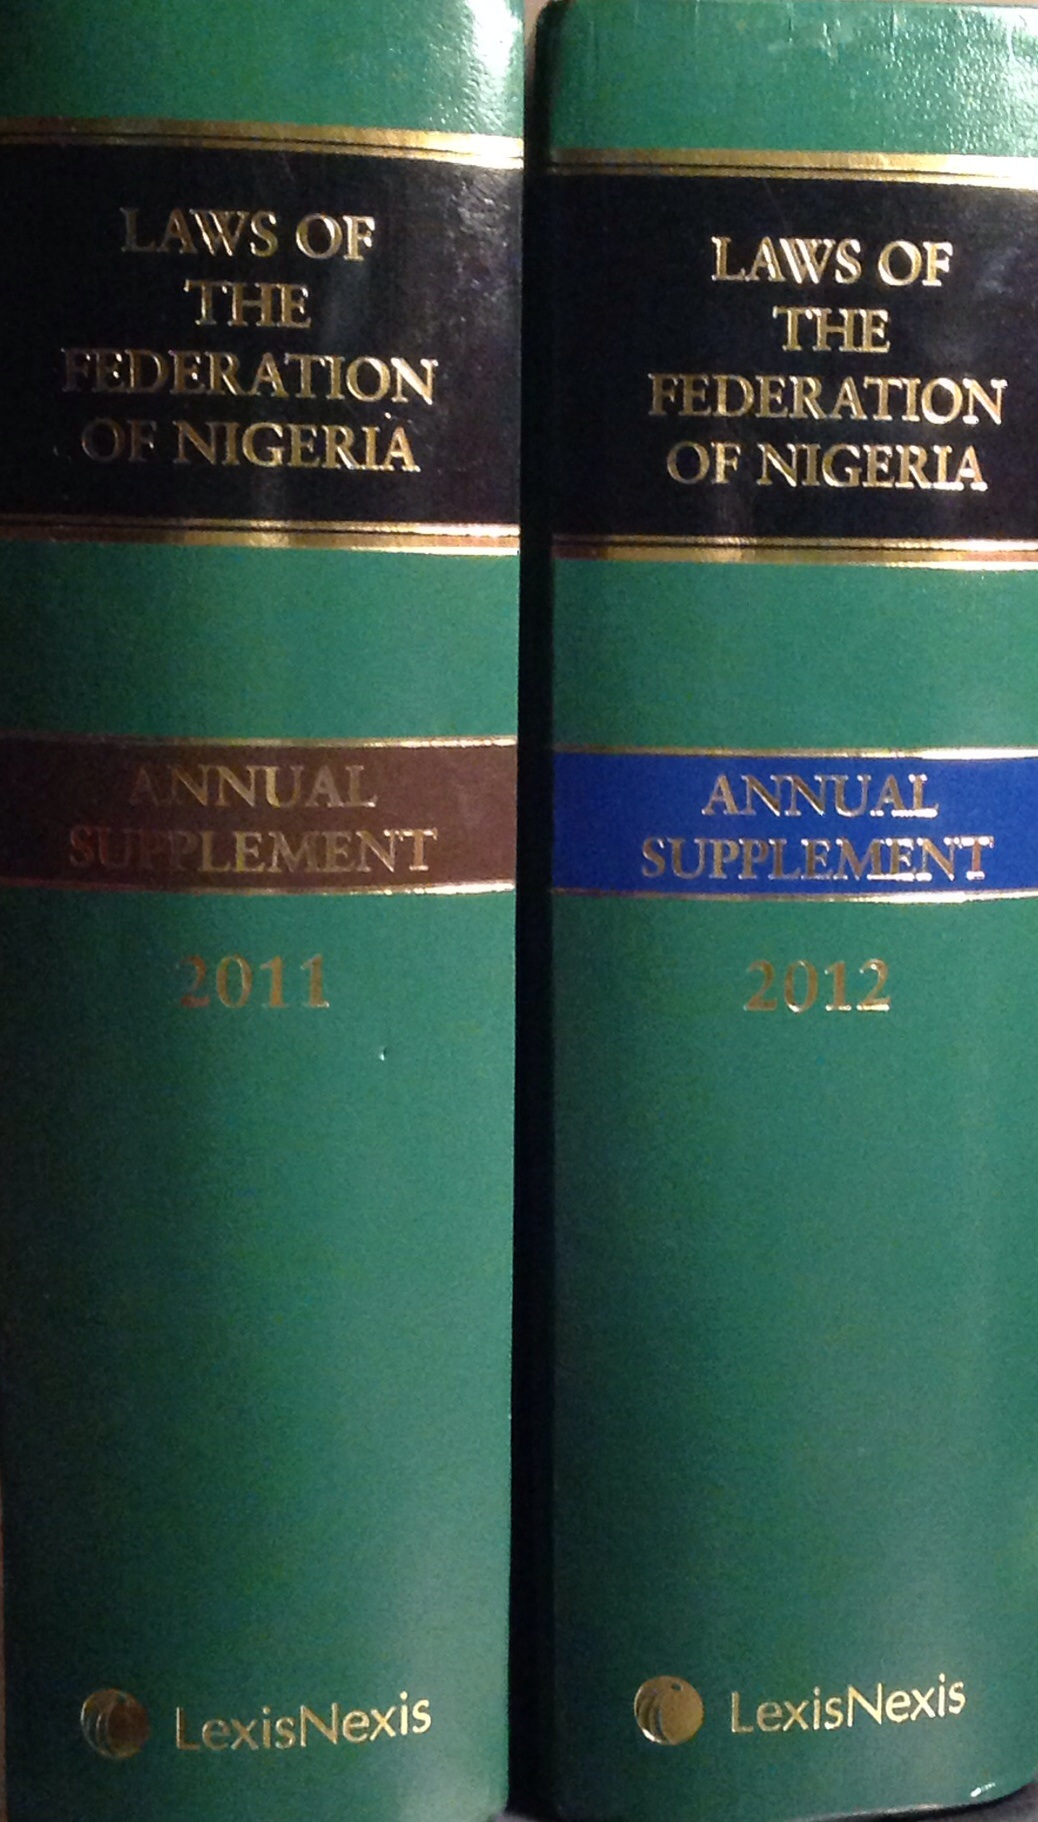 The Latest Laws Of The Federation Of Nigeria ( 2 volume Supplements)